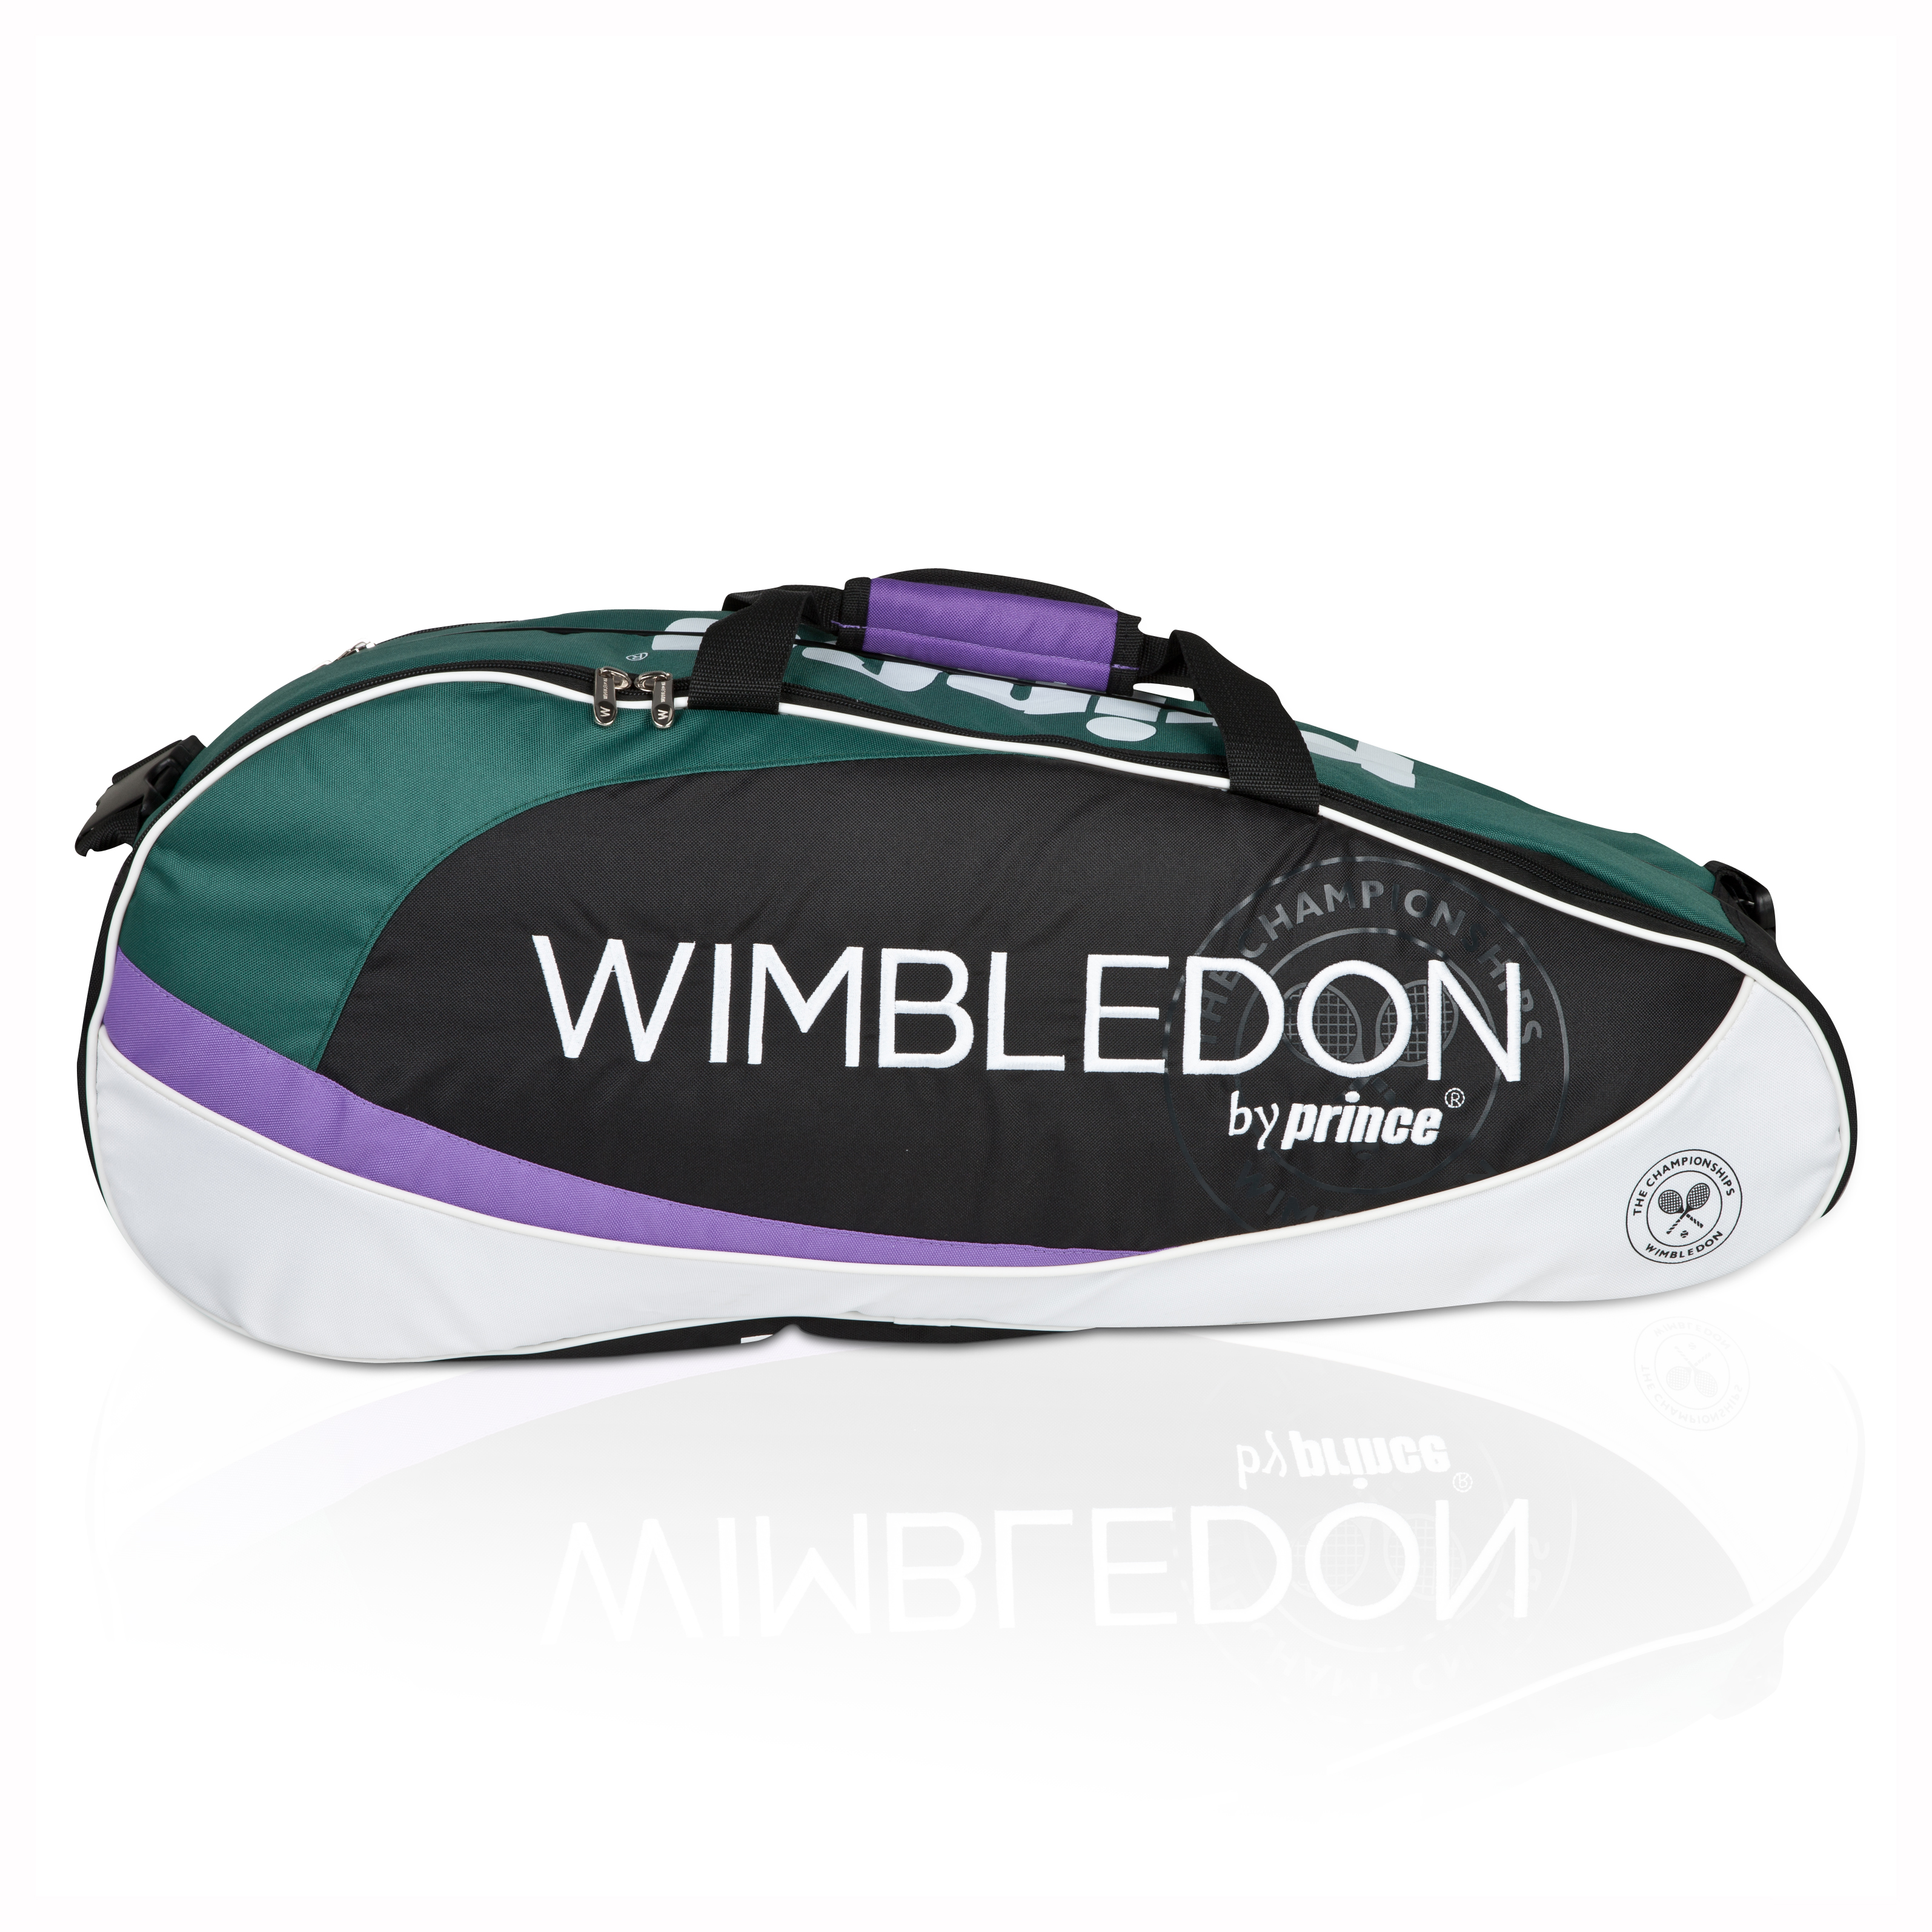 Wimbledon By Prince Grass Court Collection 6 Pack Racket Bag